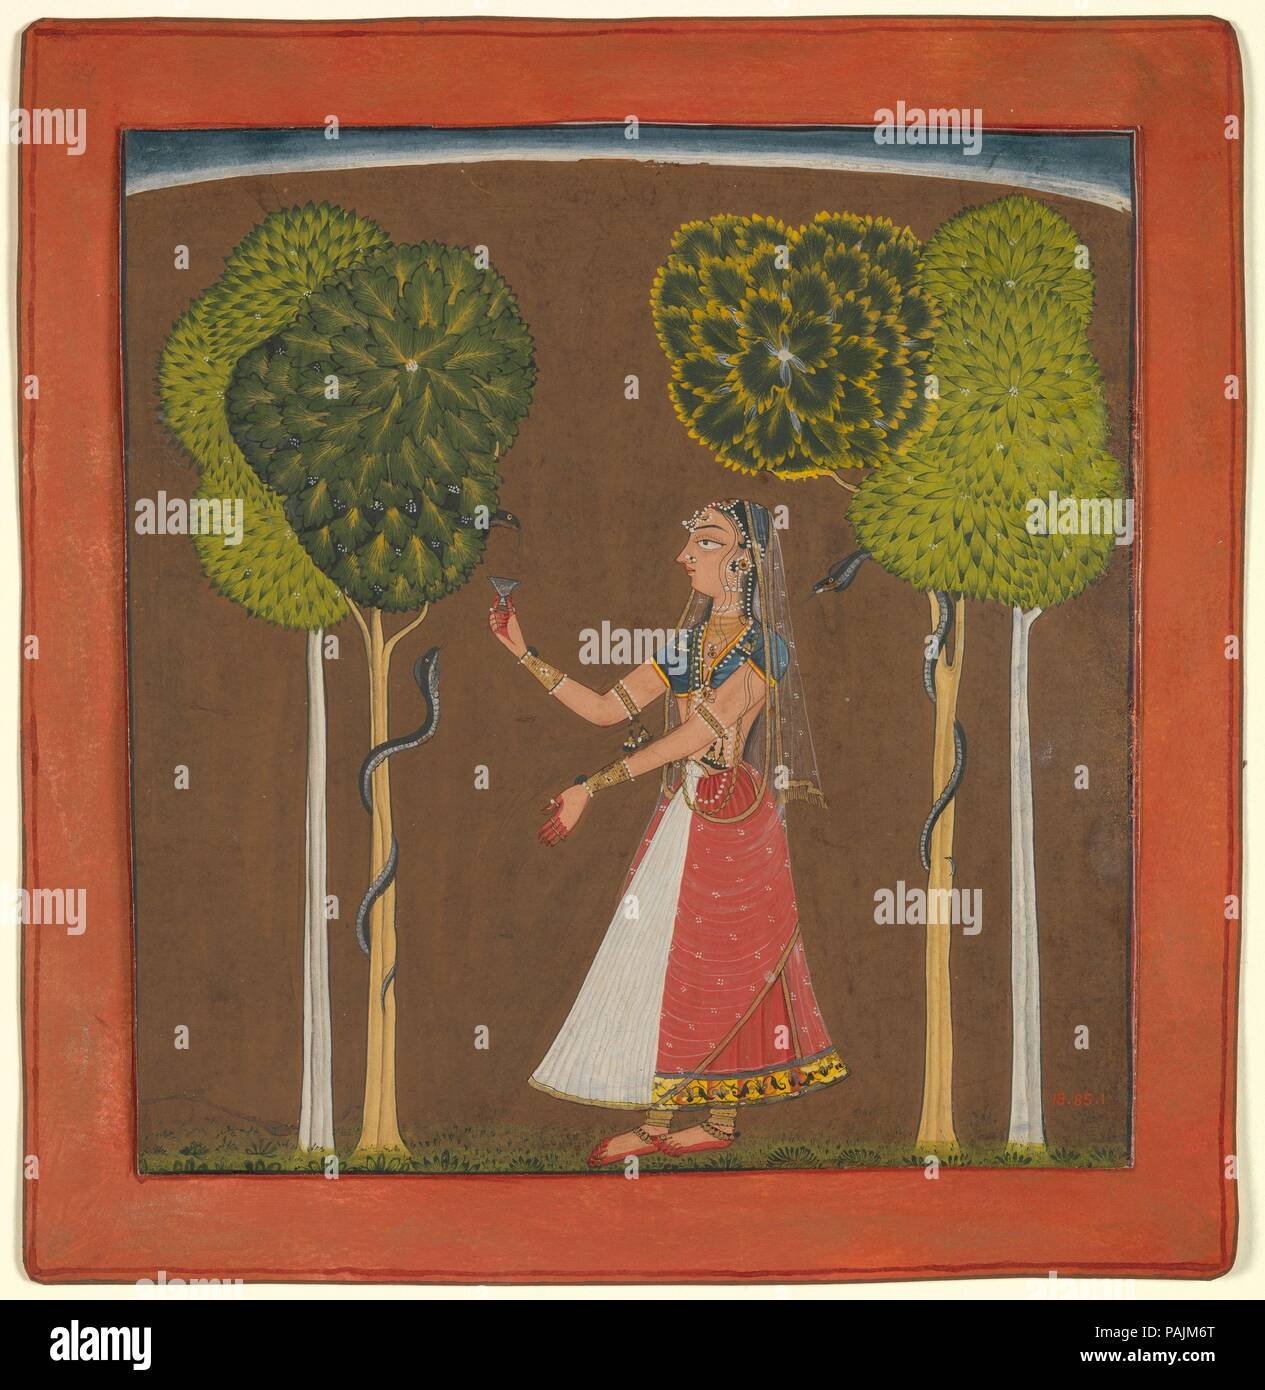 Ragini, possibly Asavari: Folio from a Ragamala Series. Culture: India (Himachal Pradesh, Mankot). Dimensions: Image: 7 in. × 6 5/8 in. (17.8 × 16.8 cm)  Sheet: 8 3/8 × 8 1/8 in. (21.3 × 20.6 cm). Date: ca. 1700-1710.  In this pictorial metaphor for a raga (a musical phrase that is used as the basis for improvisation), a lady charms the snakes entwining the adjacent trees. The tree motifs frame the young woman, seen against a monochromatic ground with arching skyline, gesturing to the snakes who respond to her movements. In a related theme, the Abhiri Ragini, the woman feeds the snakes milk fr - Stock Image